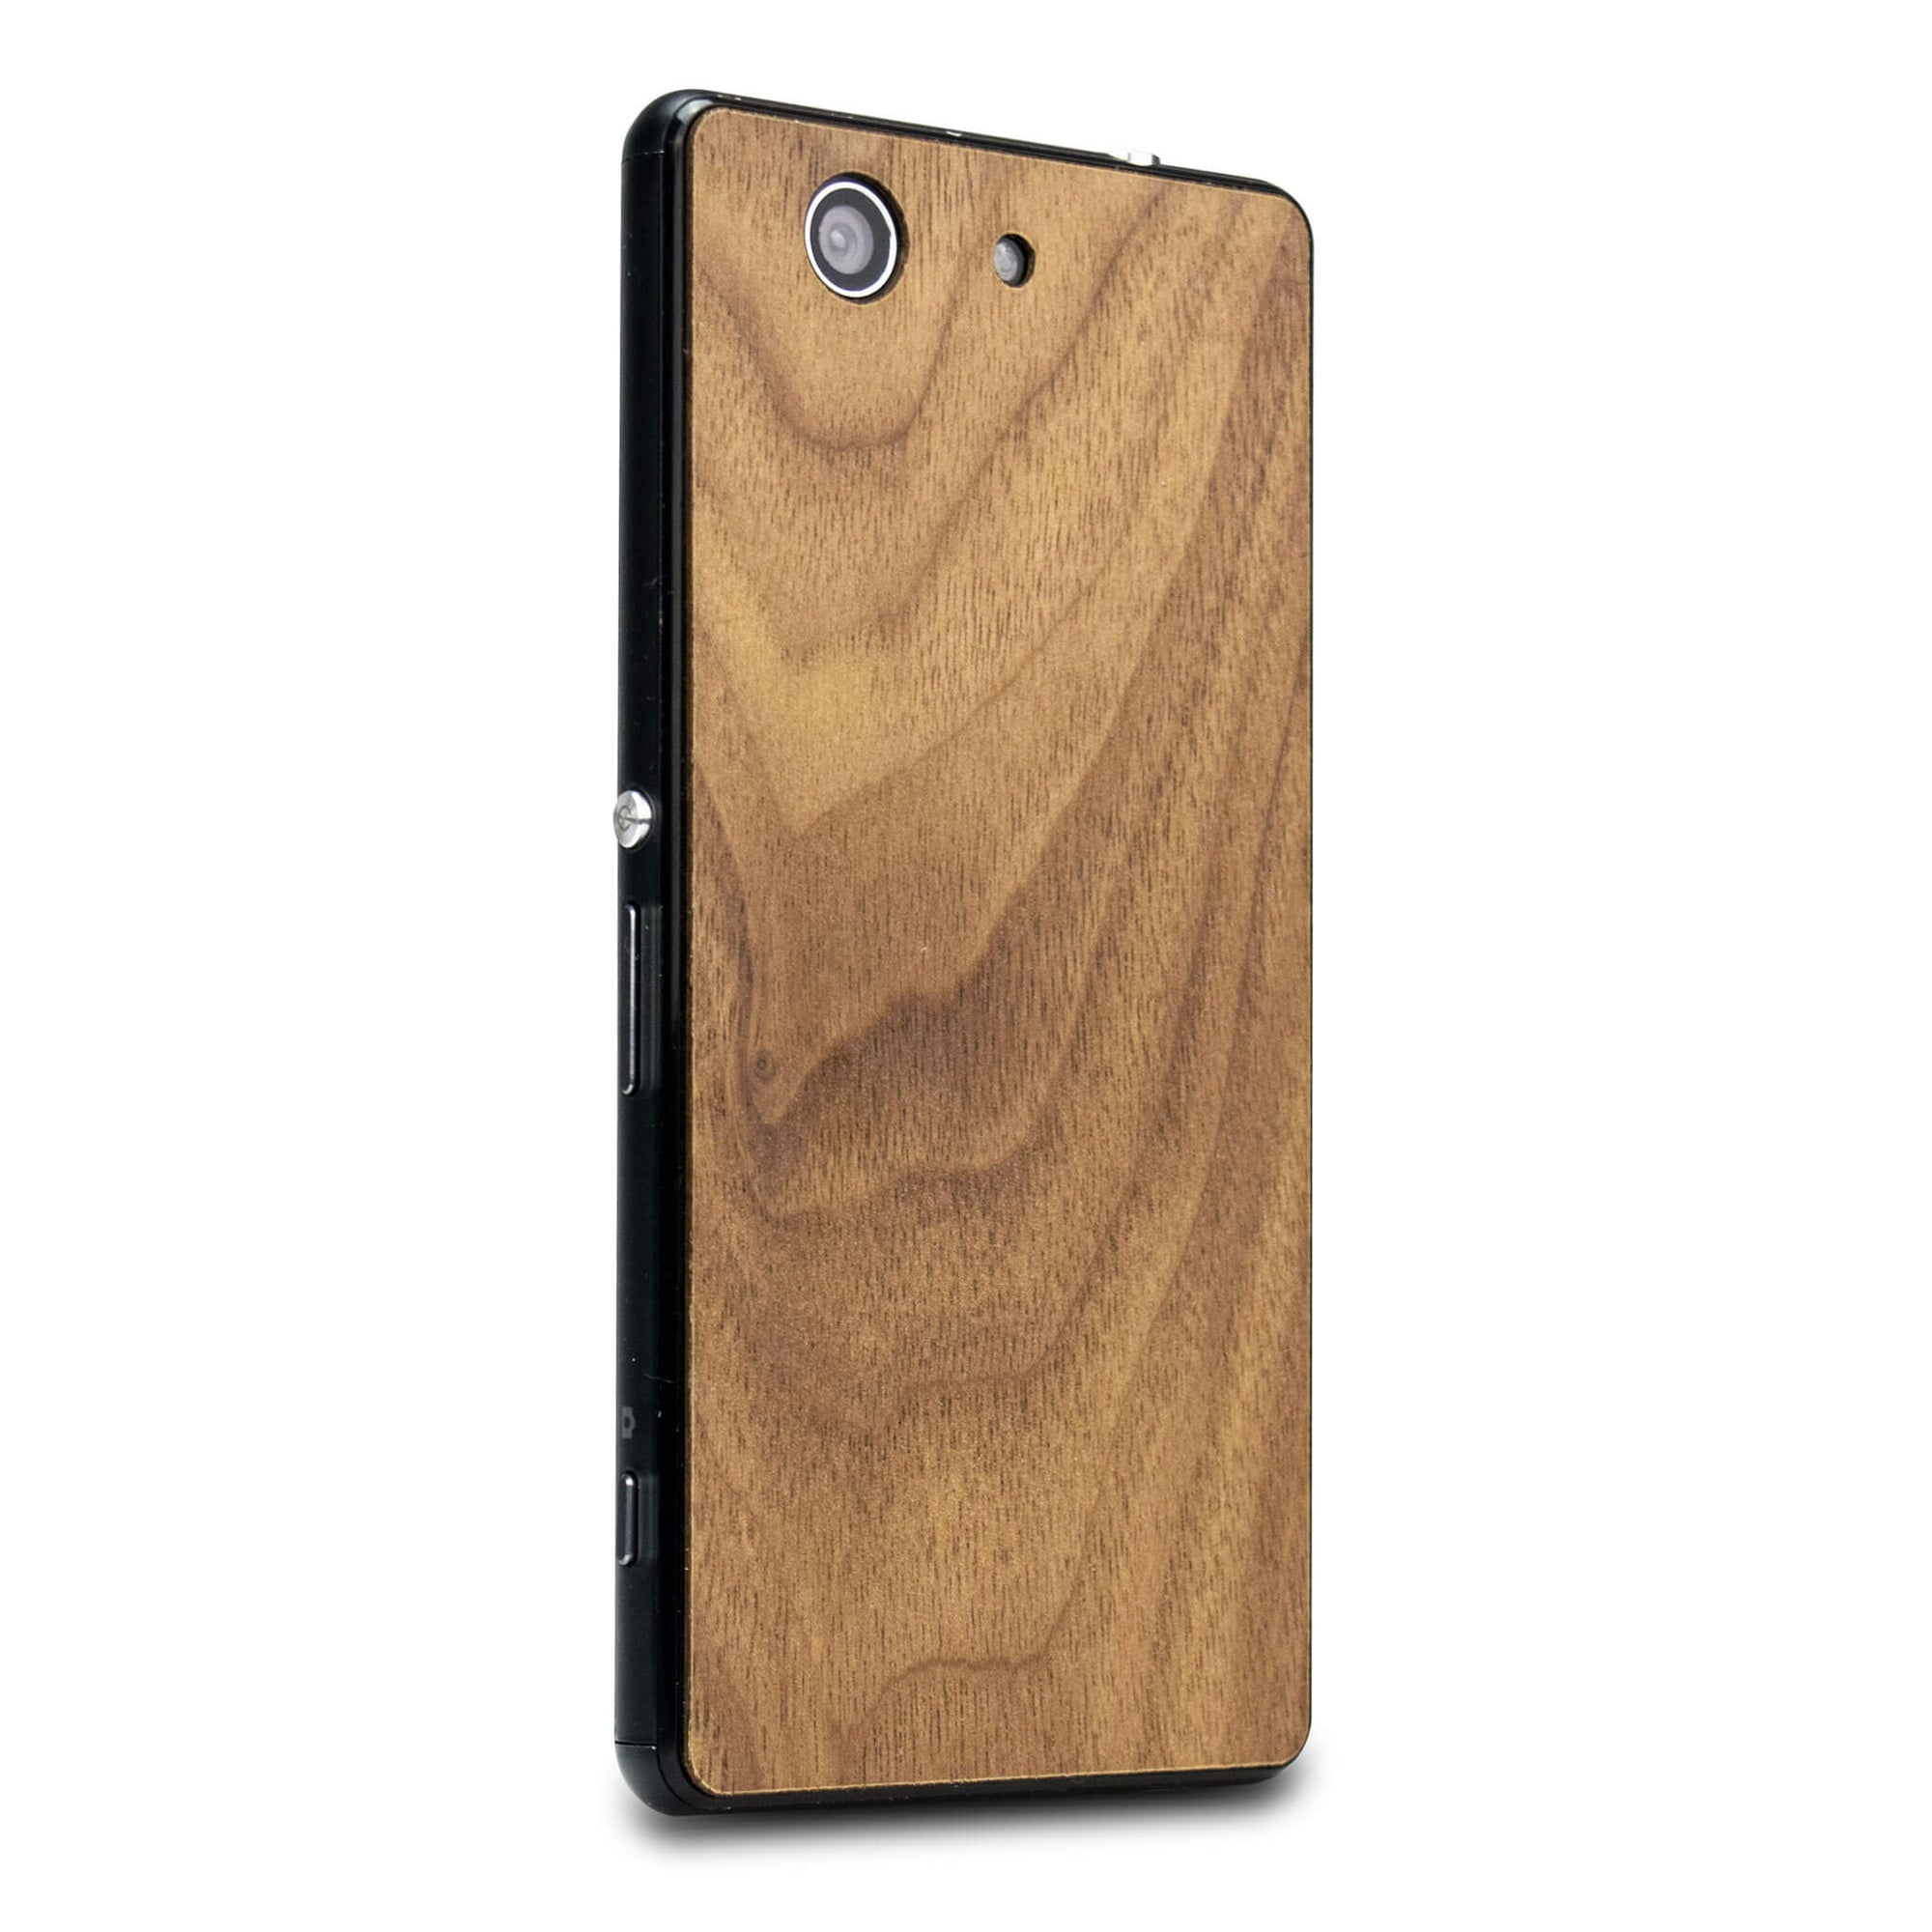 Sony XPERIA Walnut Wood Cover